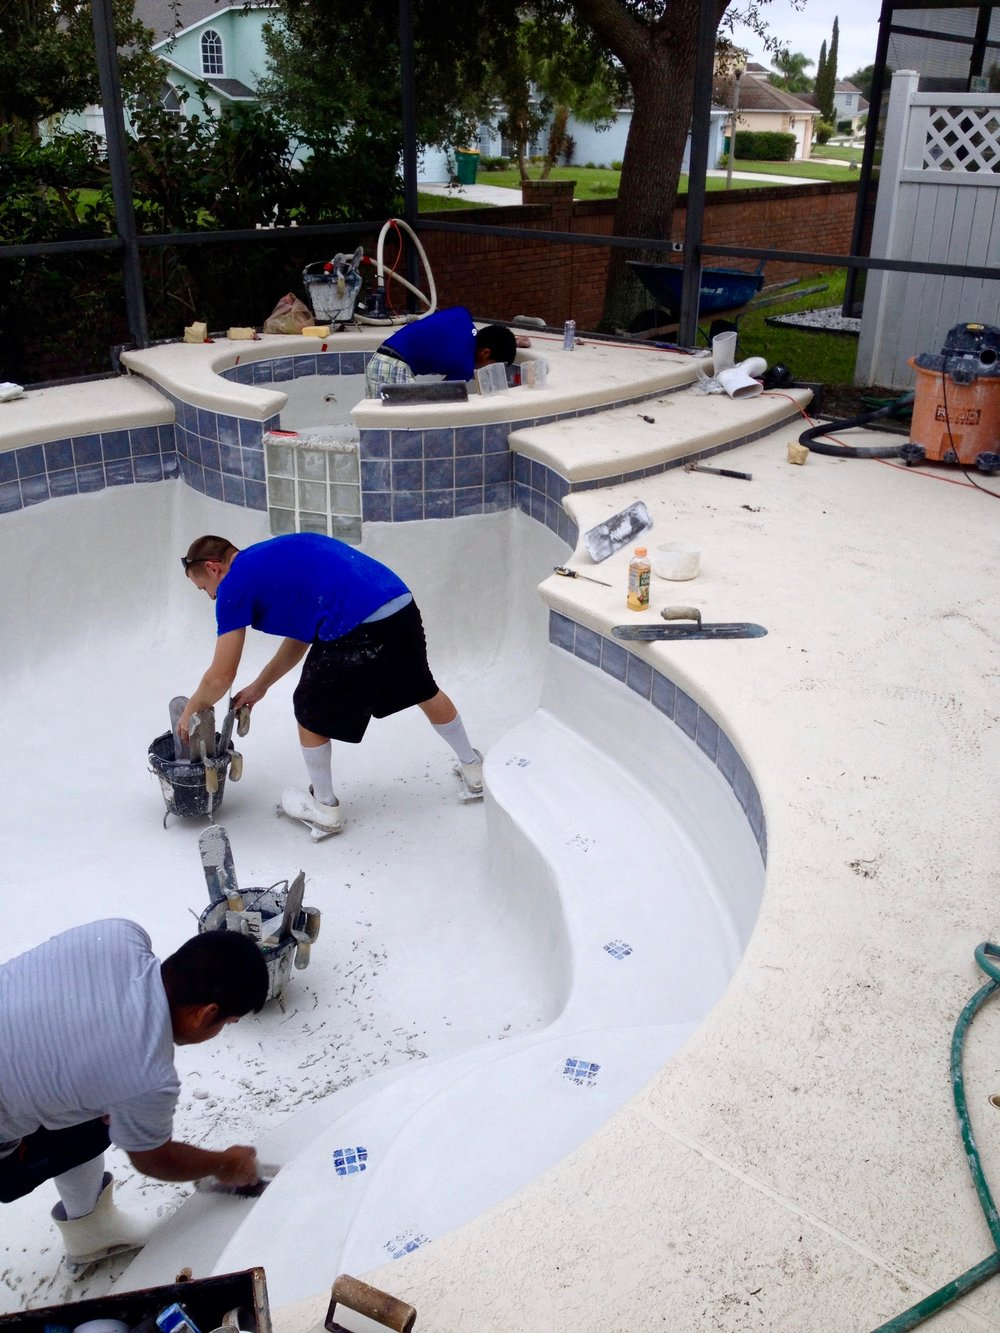 Plastering team finishing resurfacing of a pool